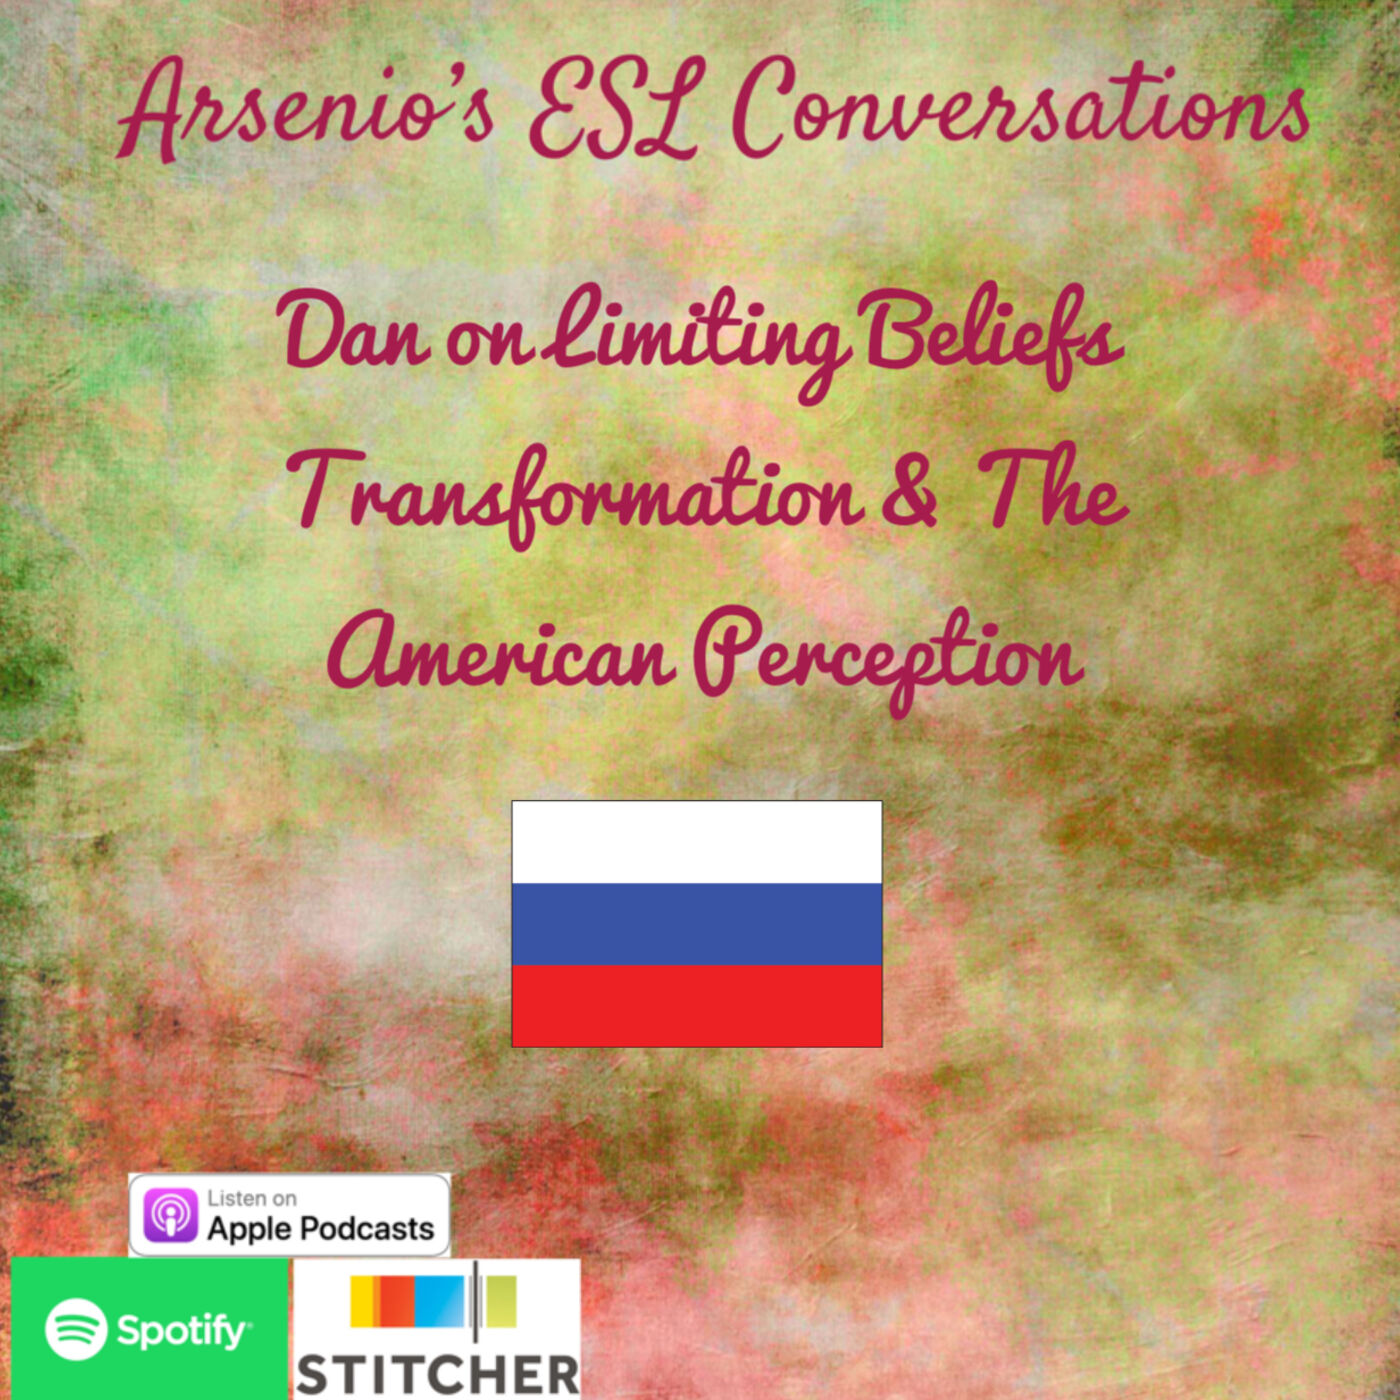 Arsenio's ESL Podcast: Dan of Russia on Limiting Beliefs and Transformation